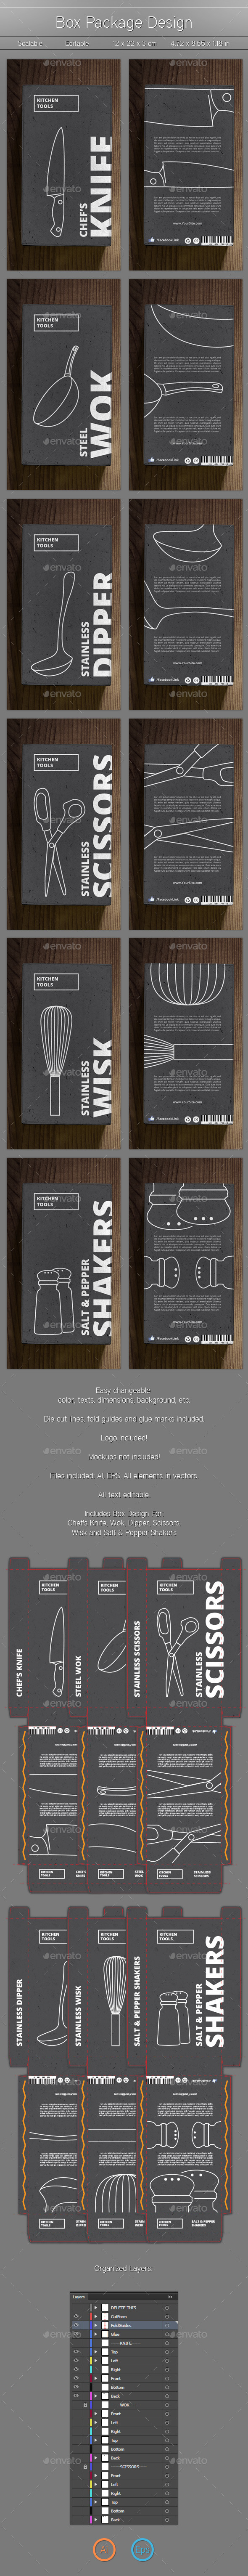 GraphicRiver Product Box Design 11358337